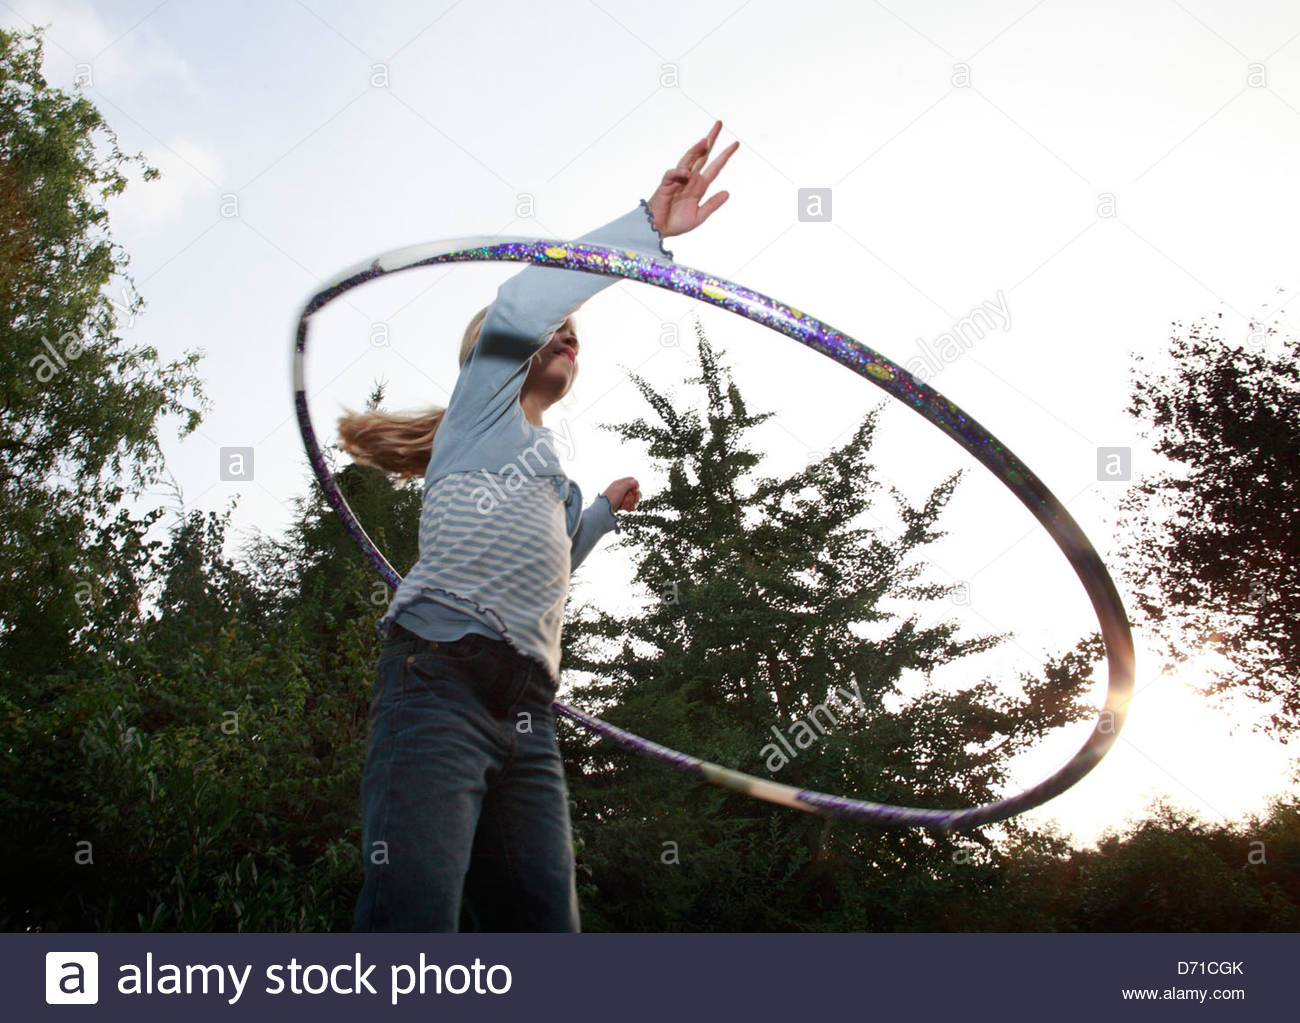 Low angle view of a Girl Playing with un hula hoop Photo Stock